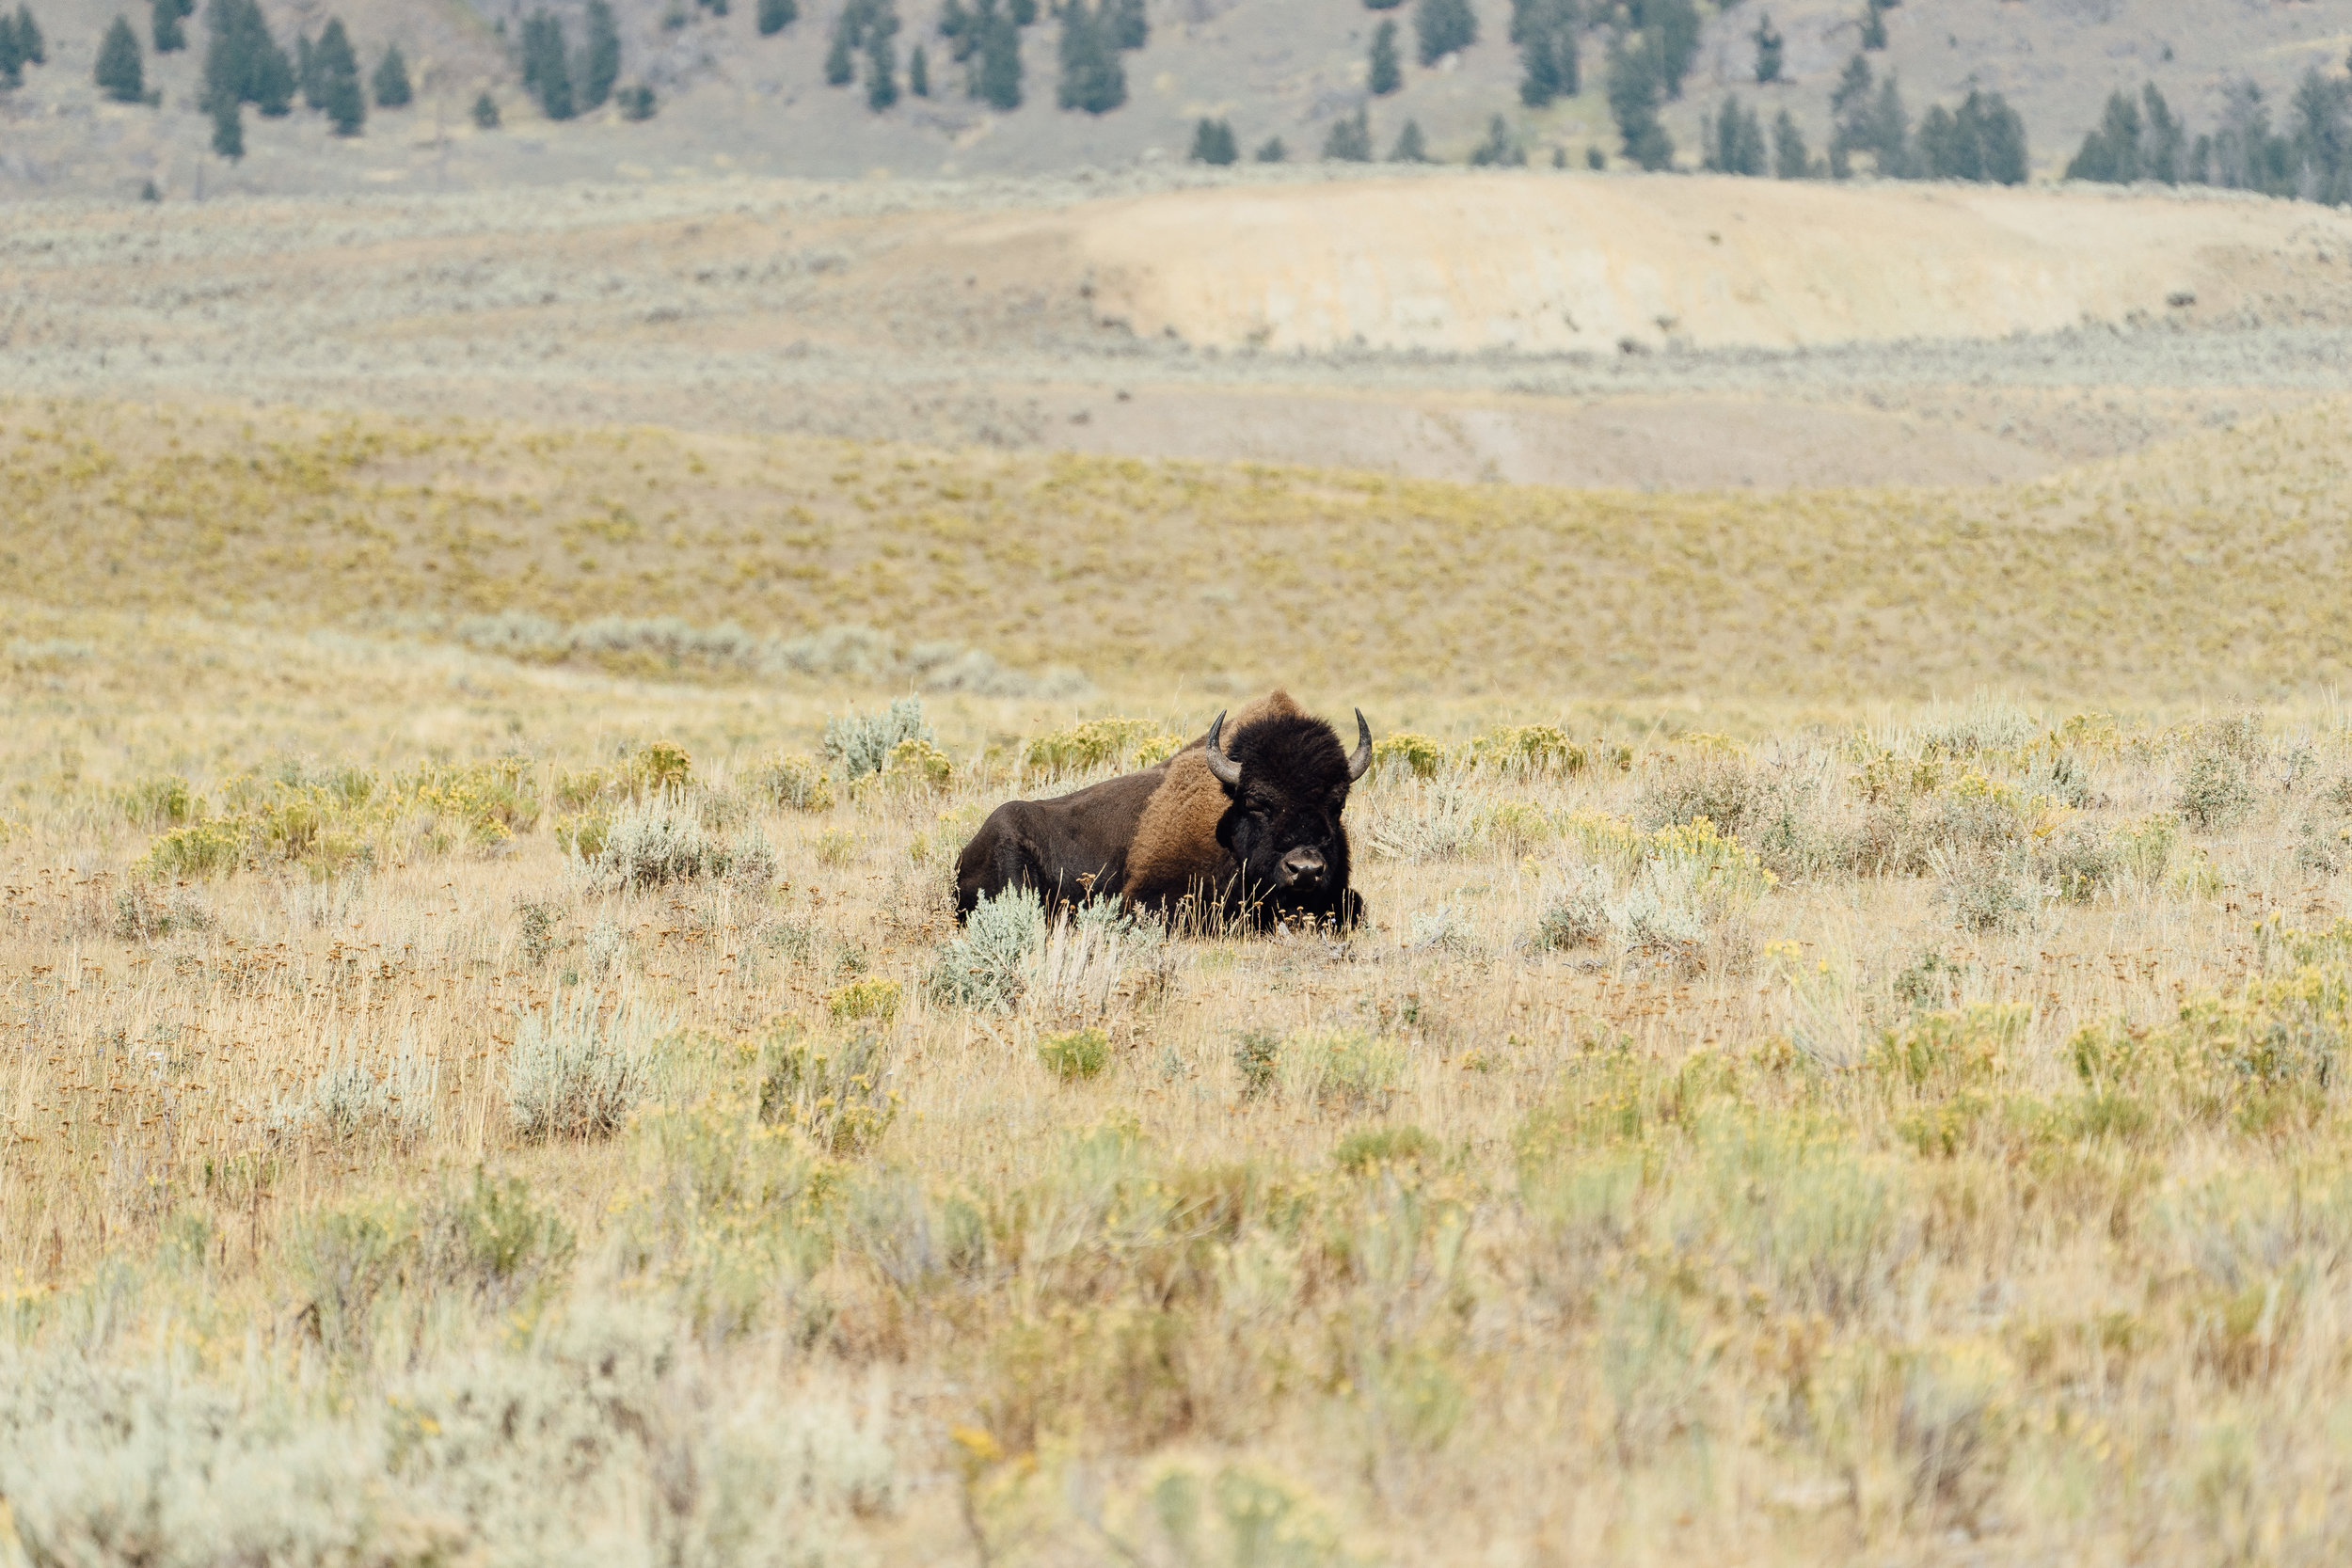 A peaceful looking bison taking an afternoon nap. Even though the bisons might look calm and somewhat clumsy, they can run as fast as 35 mph!